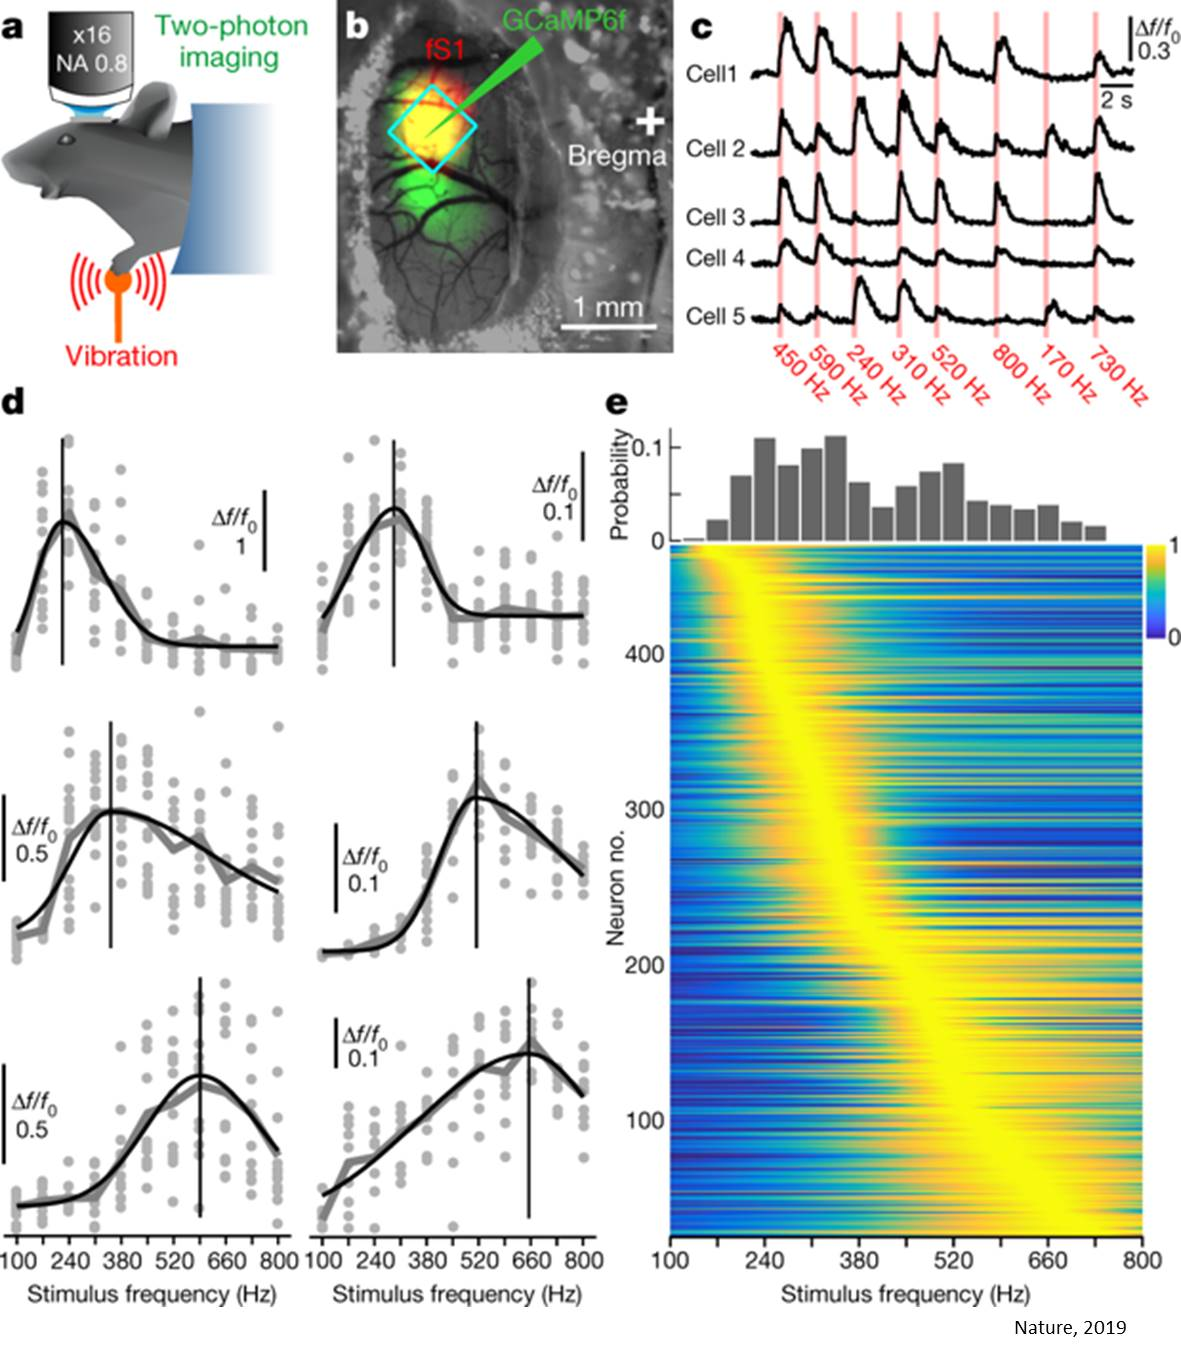 Vibration processing in the brain!